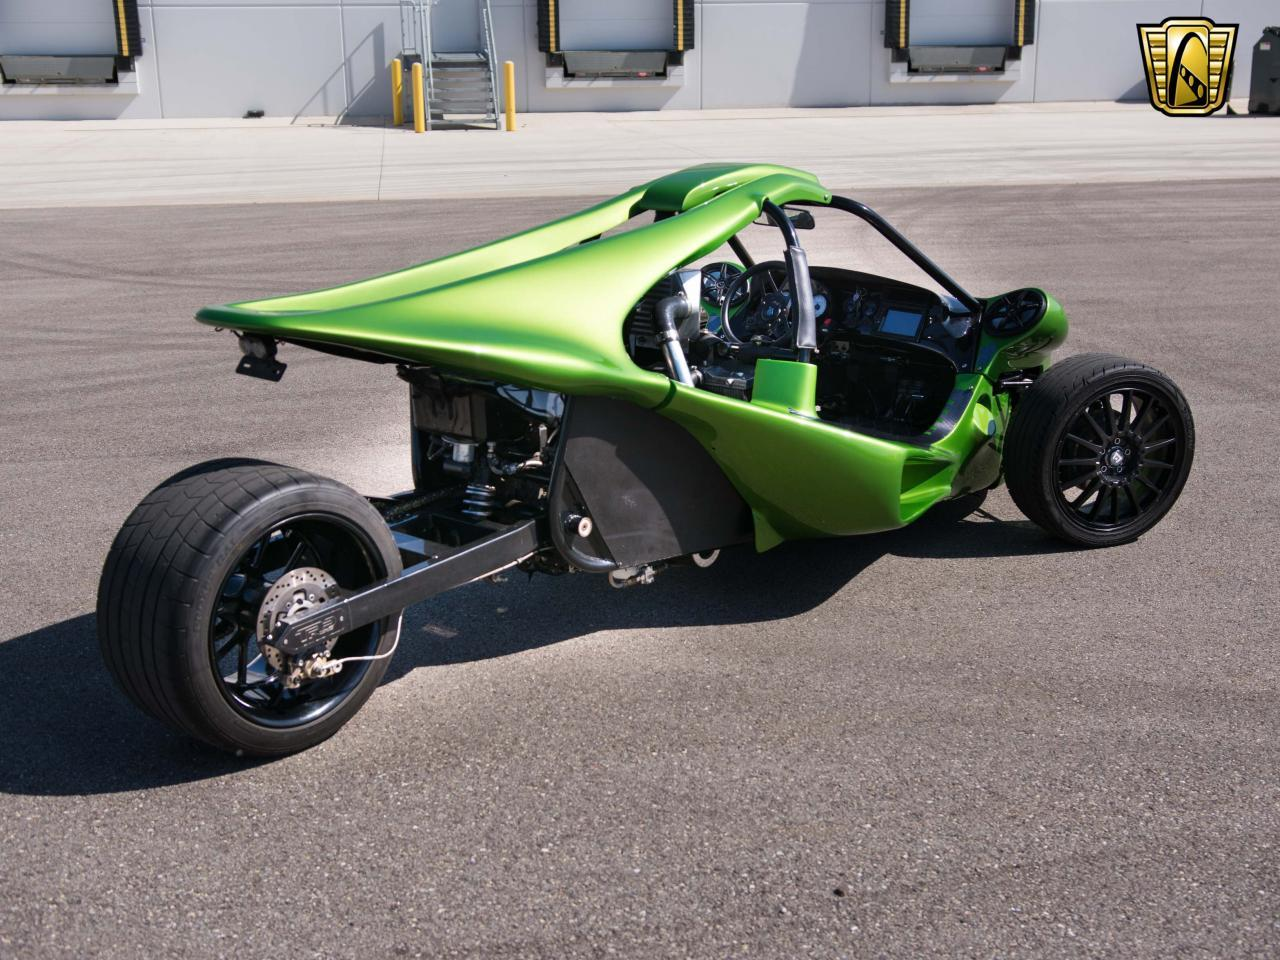 Large Picture of 2008 Kawasaki T-Rex Replica located in Wisconsin - L7NA